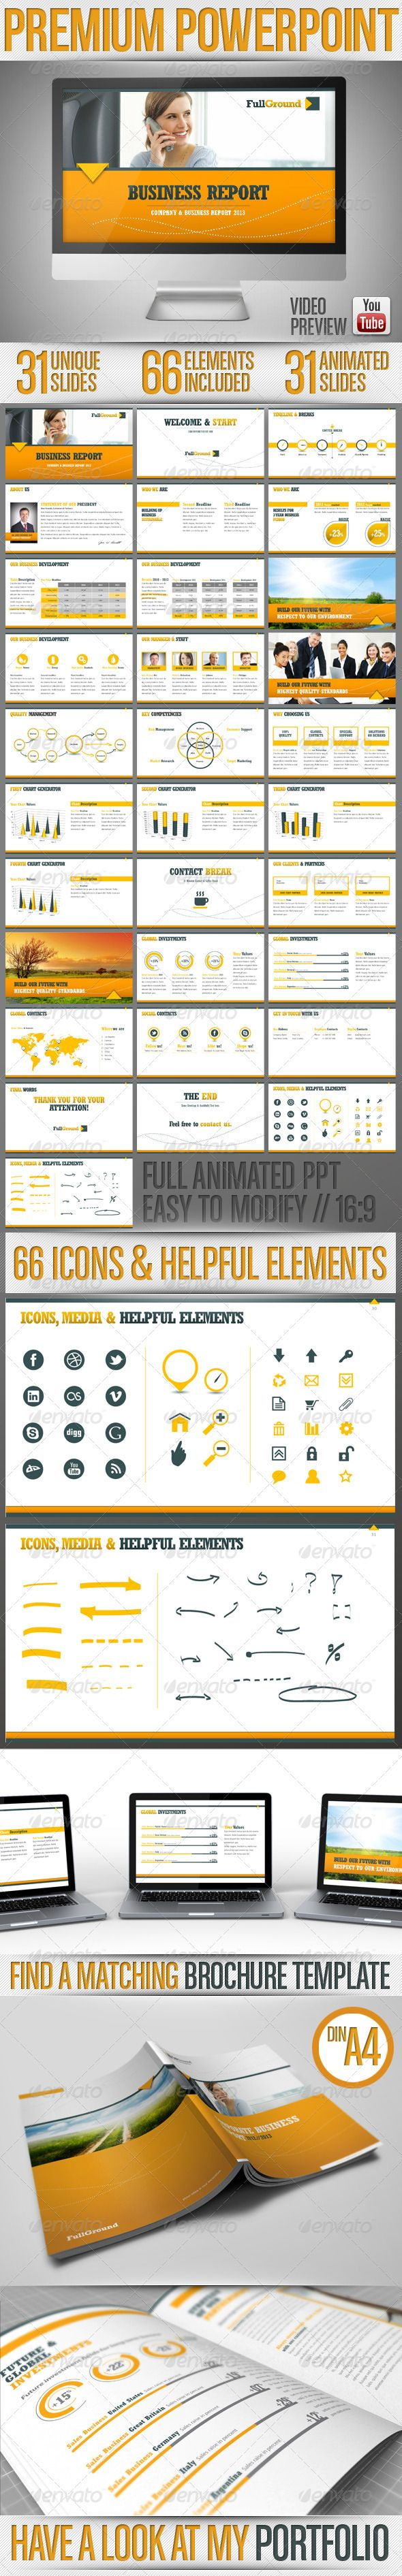 Fullground - PowerPoint Presentation Template Get the source files for download: http://graphicriver.net/item/fullground-powerpoint-presentation-template/3351499